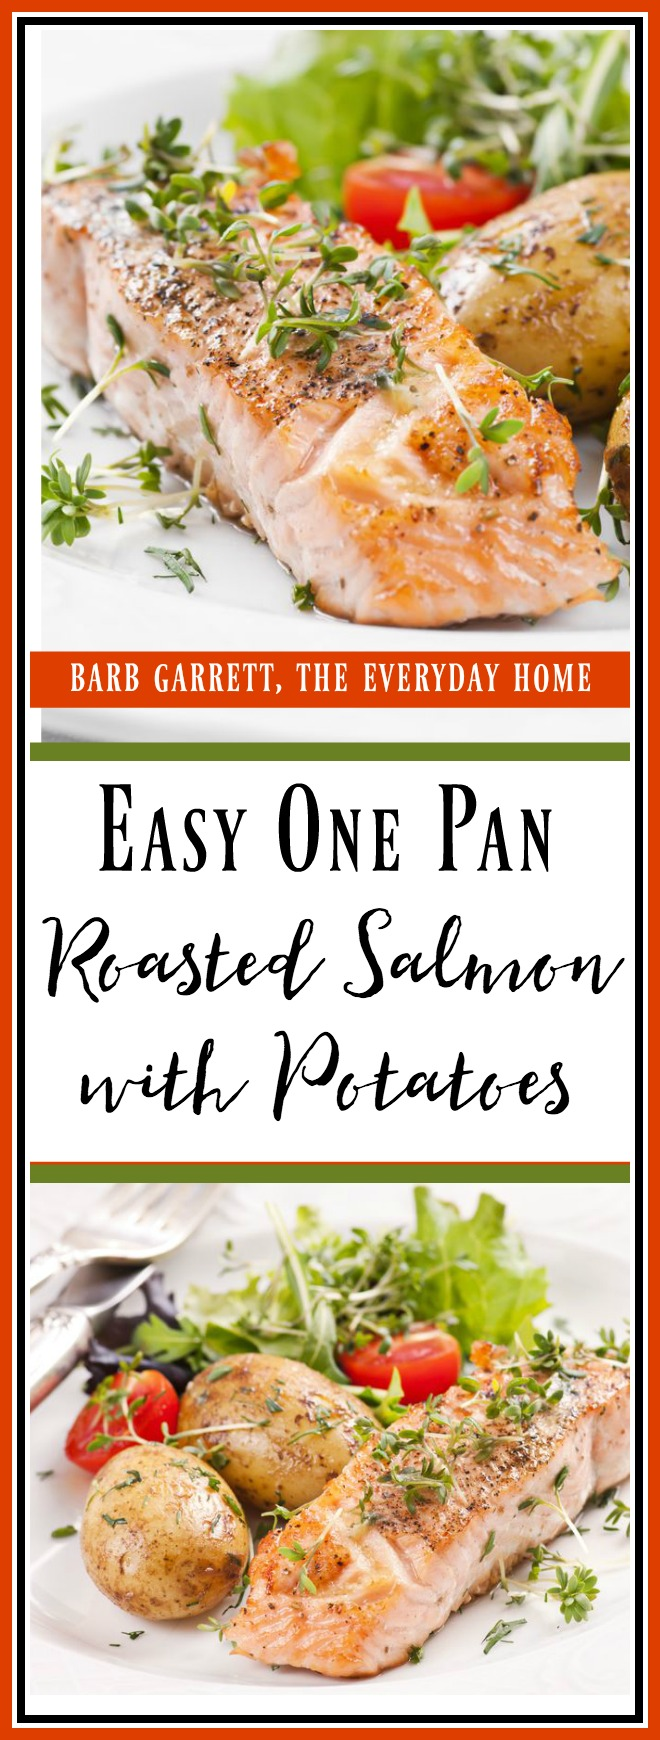 NO FAIL Easy One Pan Roasted Salmon and Potatoes   The Everyday Home   www.everydayhomeblog.com